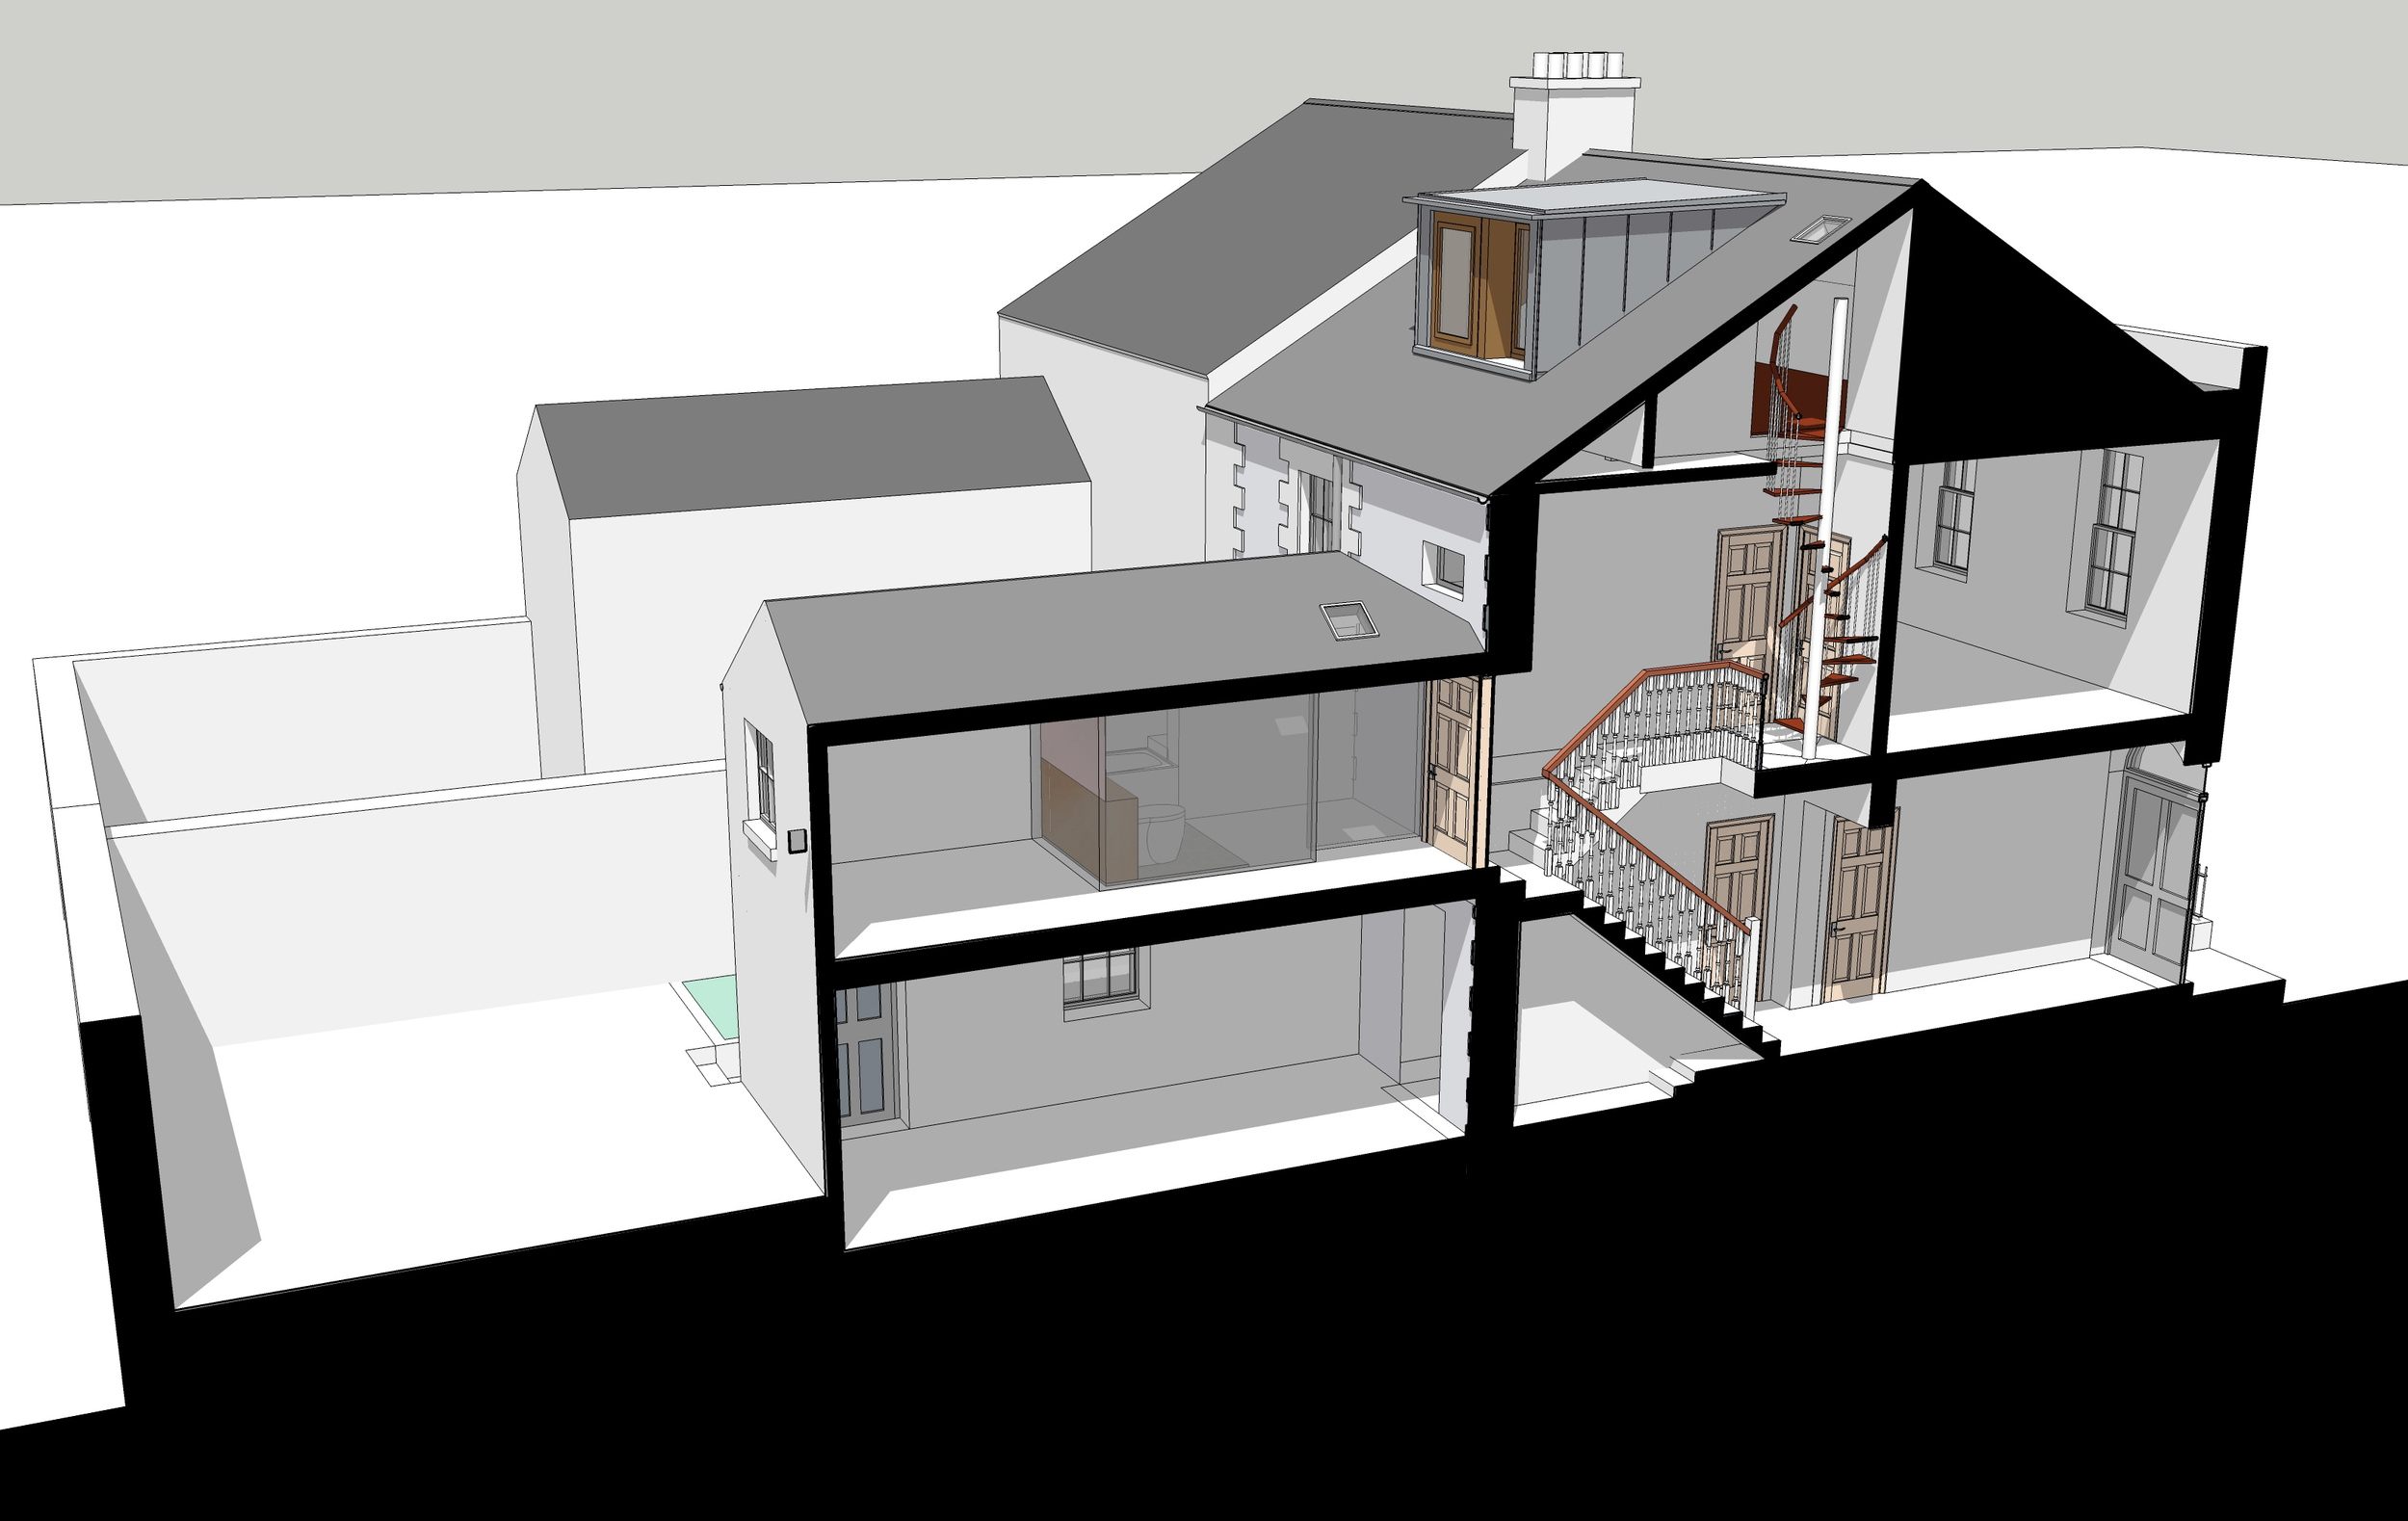 Section Drawing Through the House